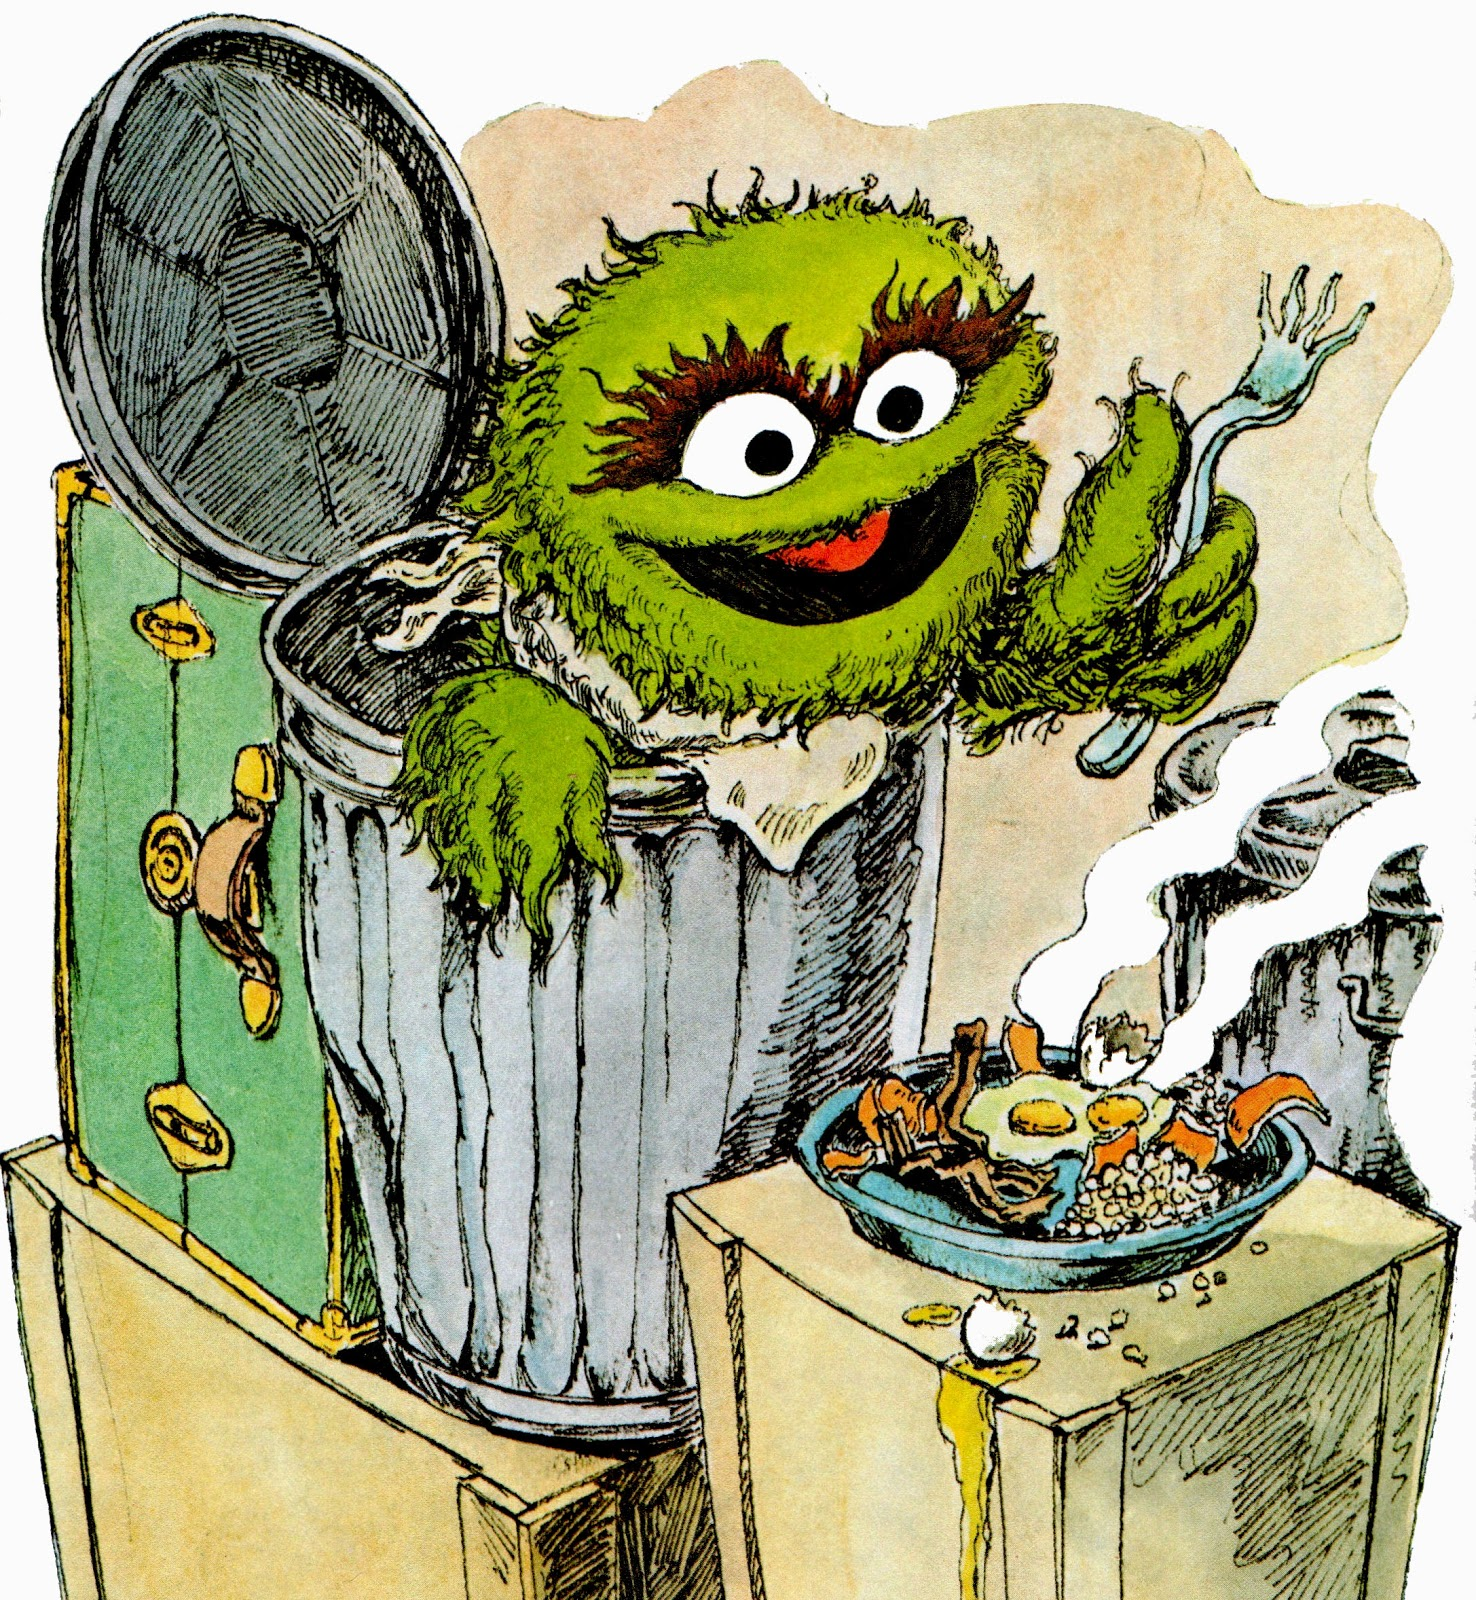 305681893430924814 in addition File Trash Gordon  Pla  Scram  2 together with Watch besides Watch in addition Trash Gordon. on oscar the grouch scram